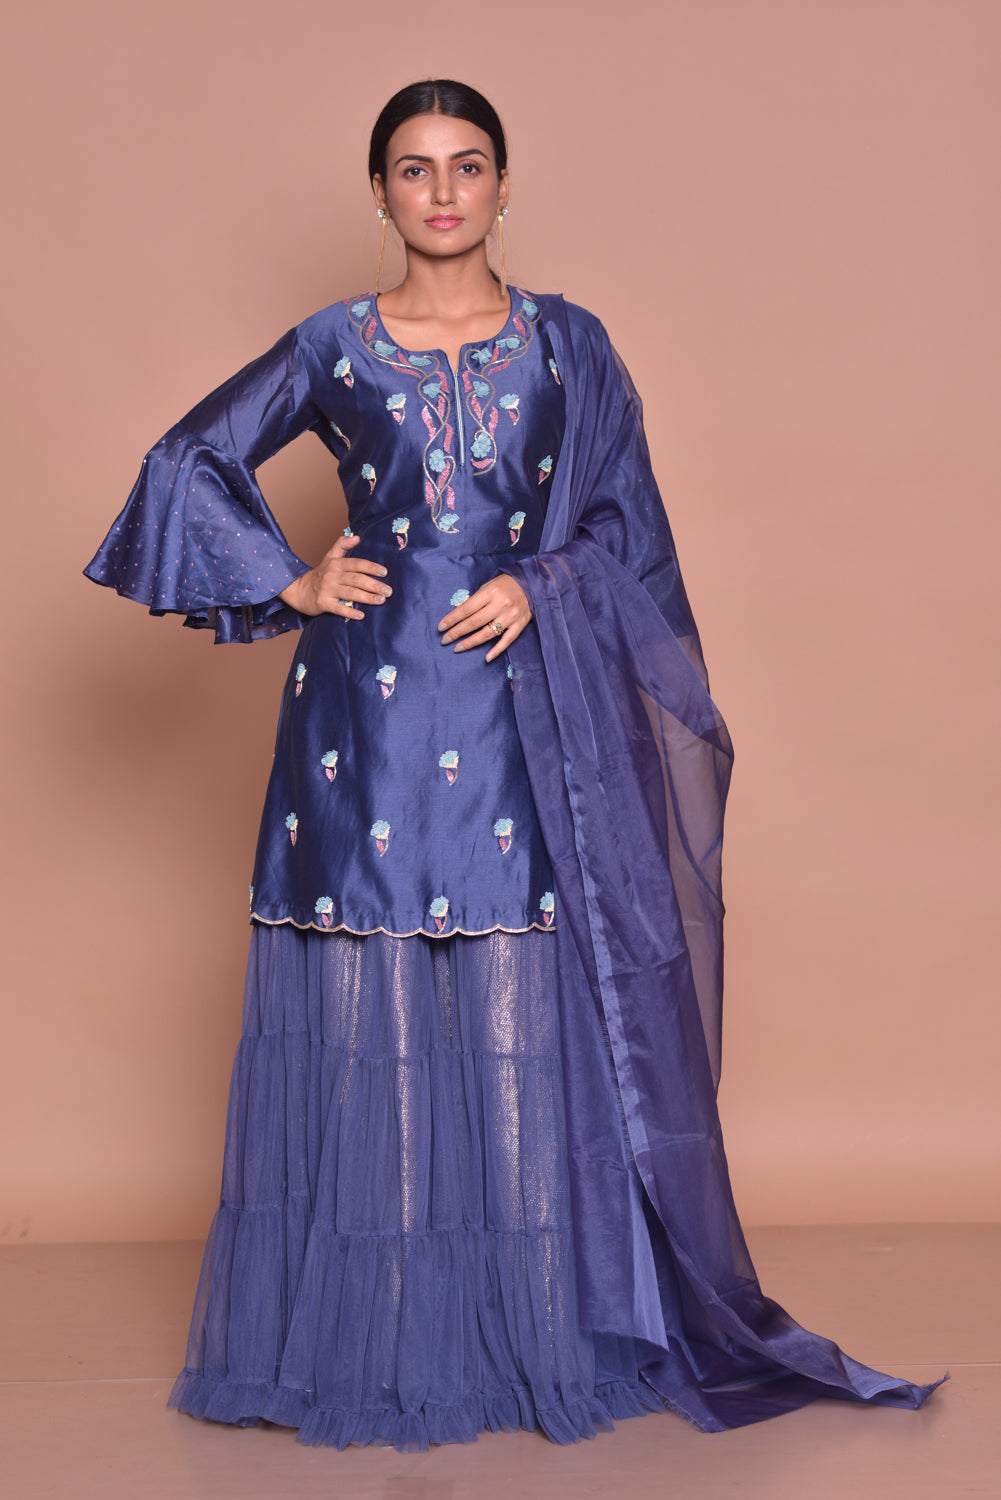 Shop beautiful royal blue embroidered kurta online in USA with skirt and dupatta. Flaunt Indian fashion with exquisite designer suits, Anarkali suits, sharara suits from Pure Elegance Indian cloth store in USA. -full view